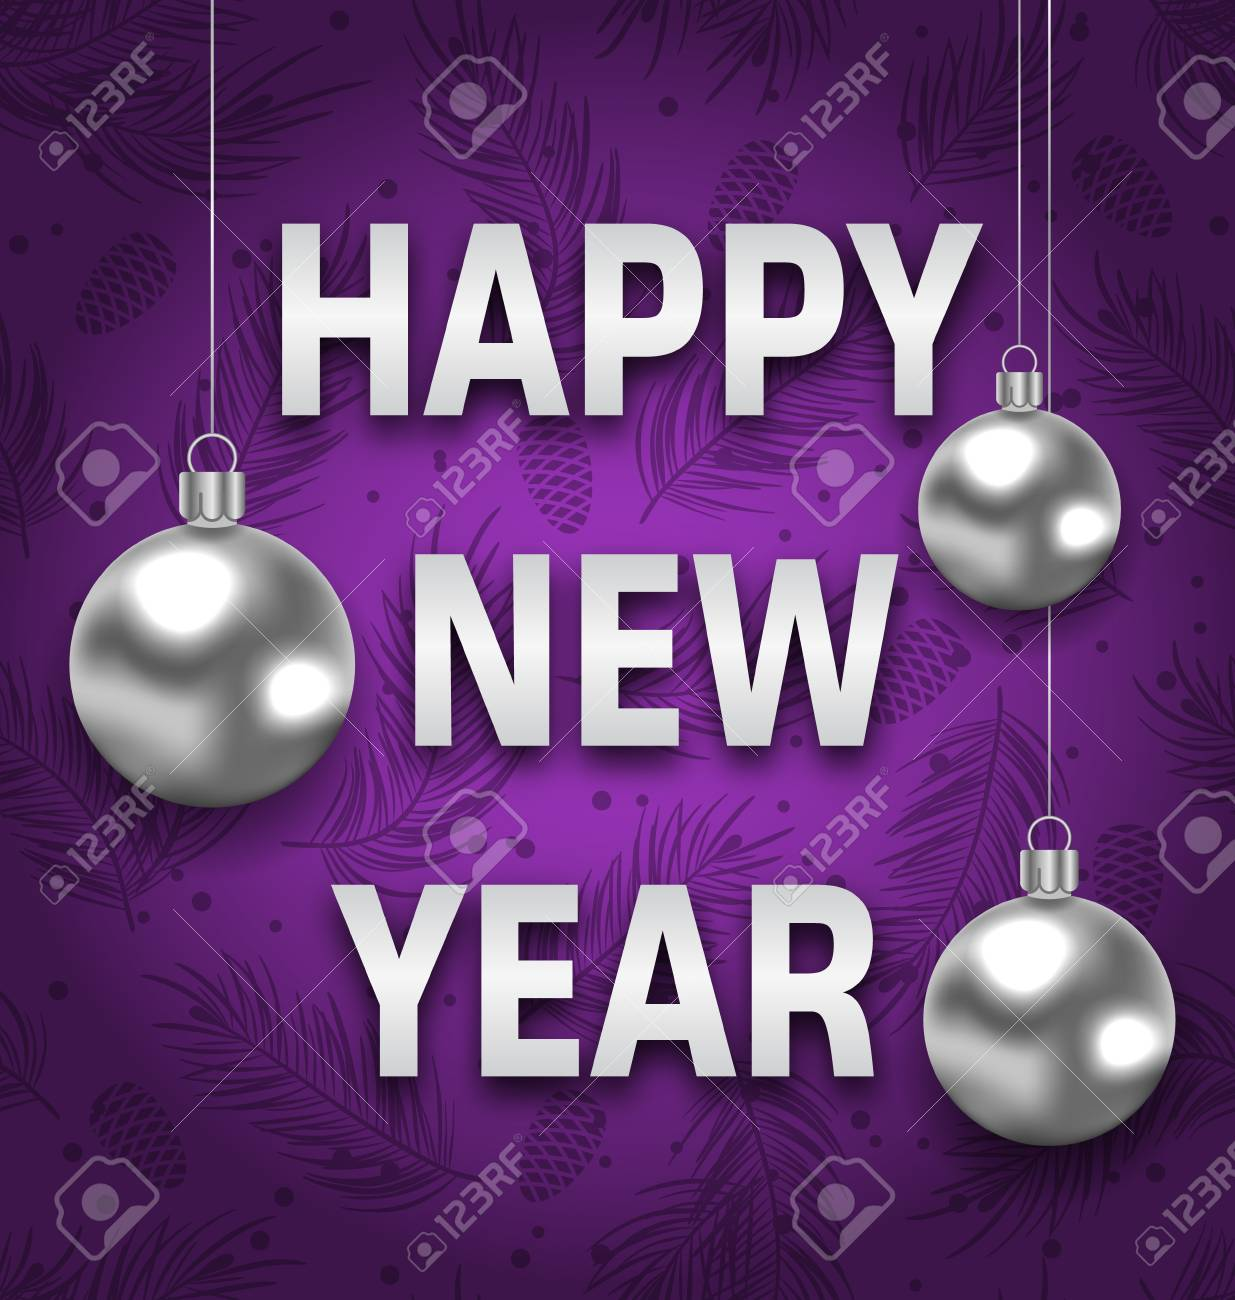 illustration illustration happy new year card with silver balls on purple background greeting postcard for winter holidays